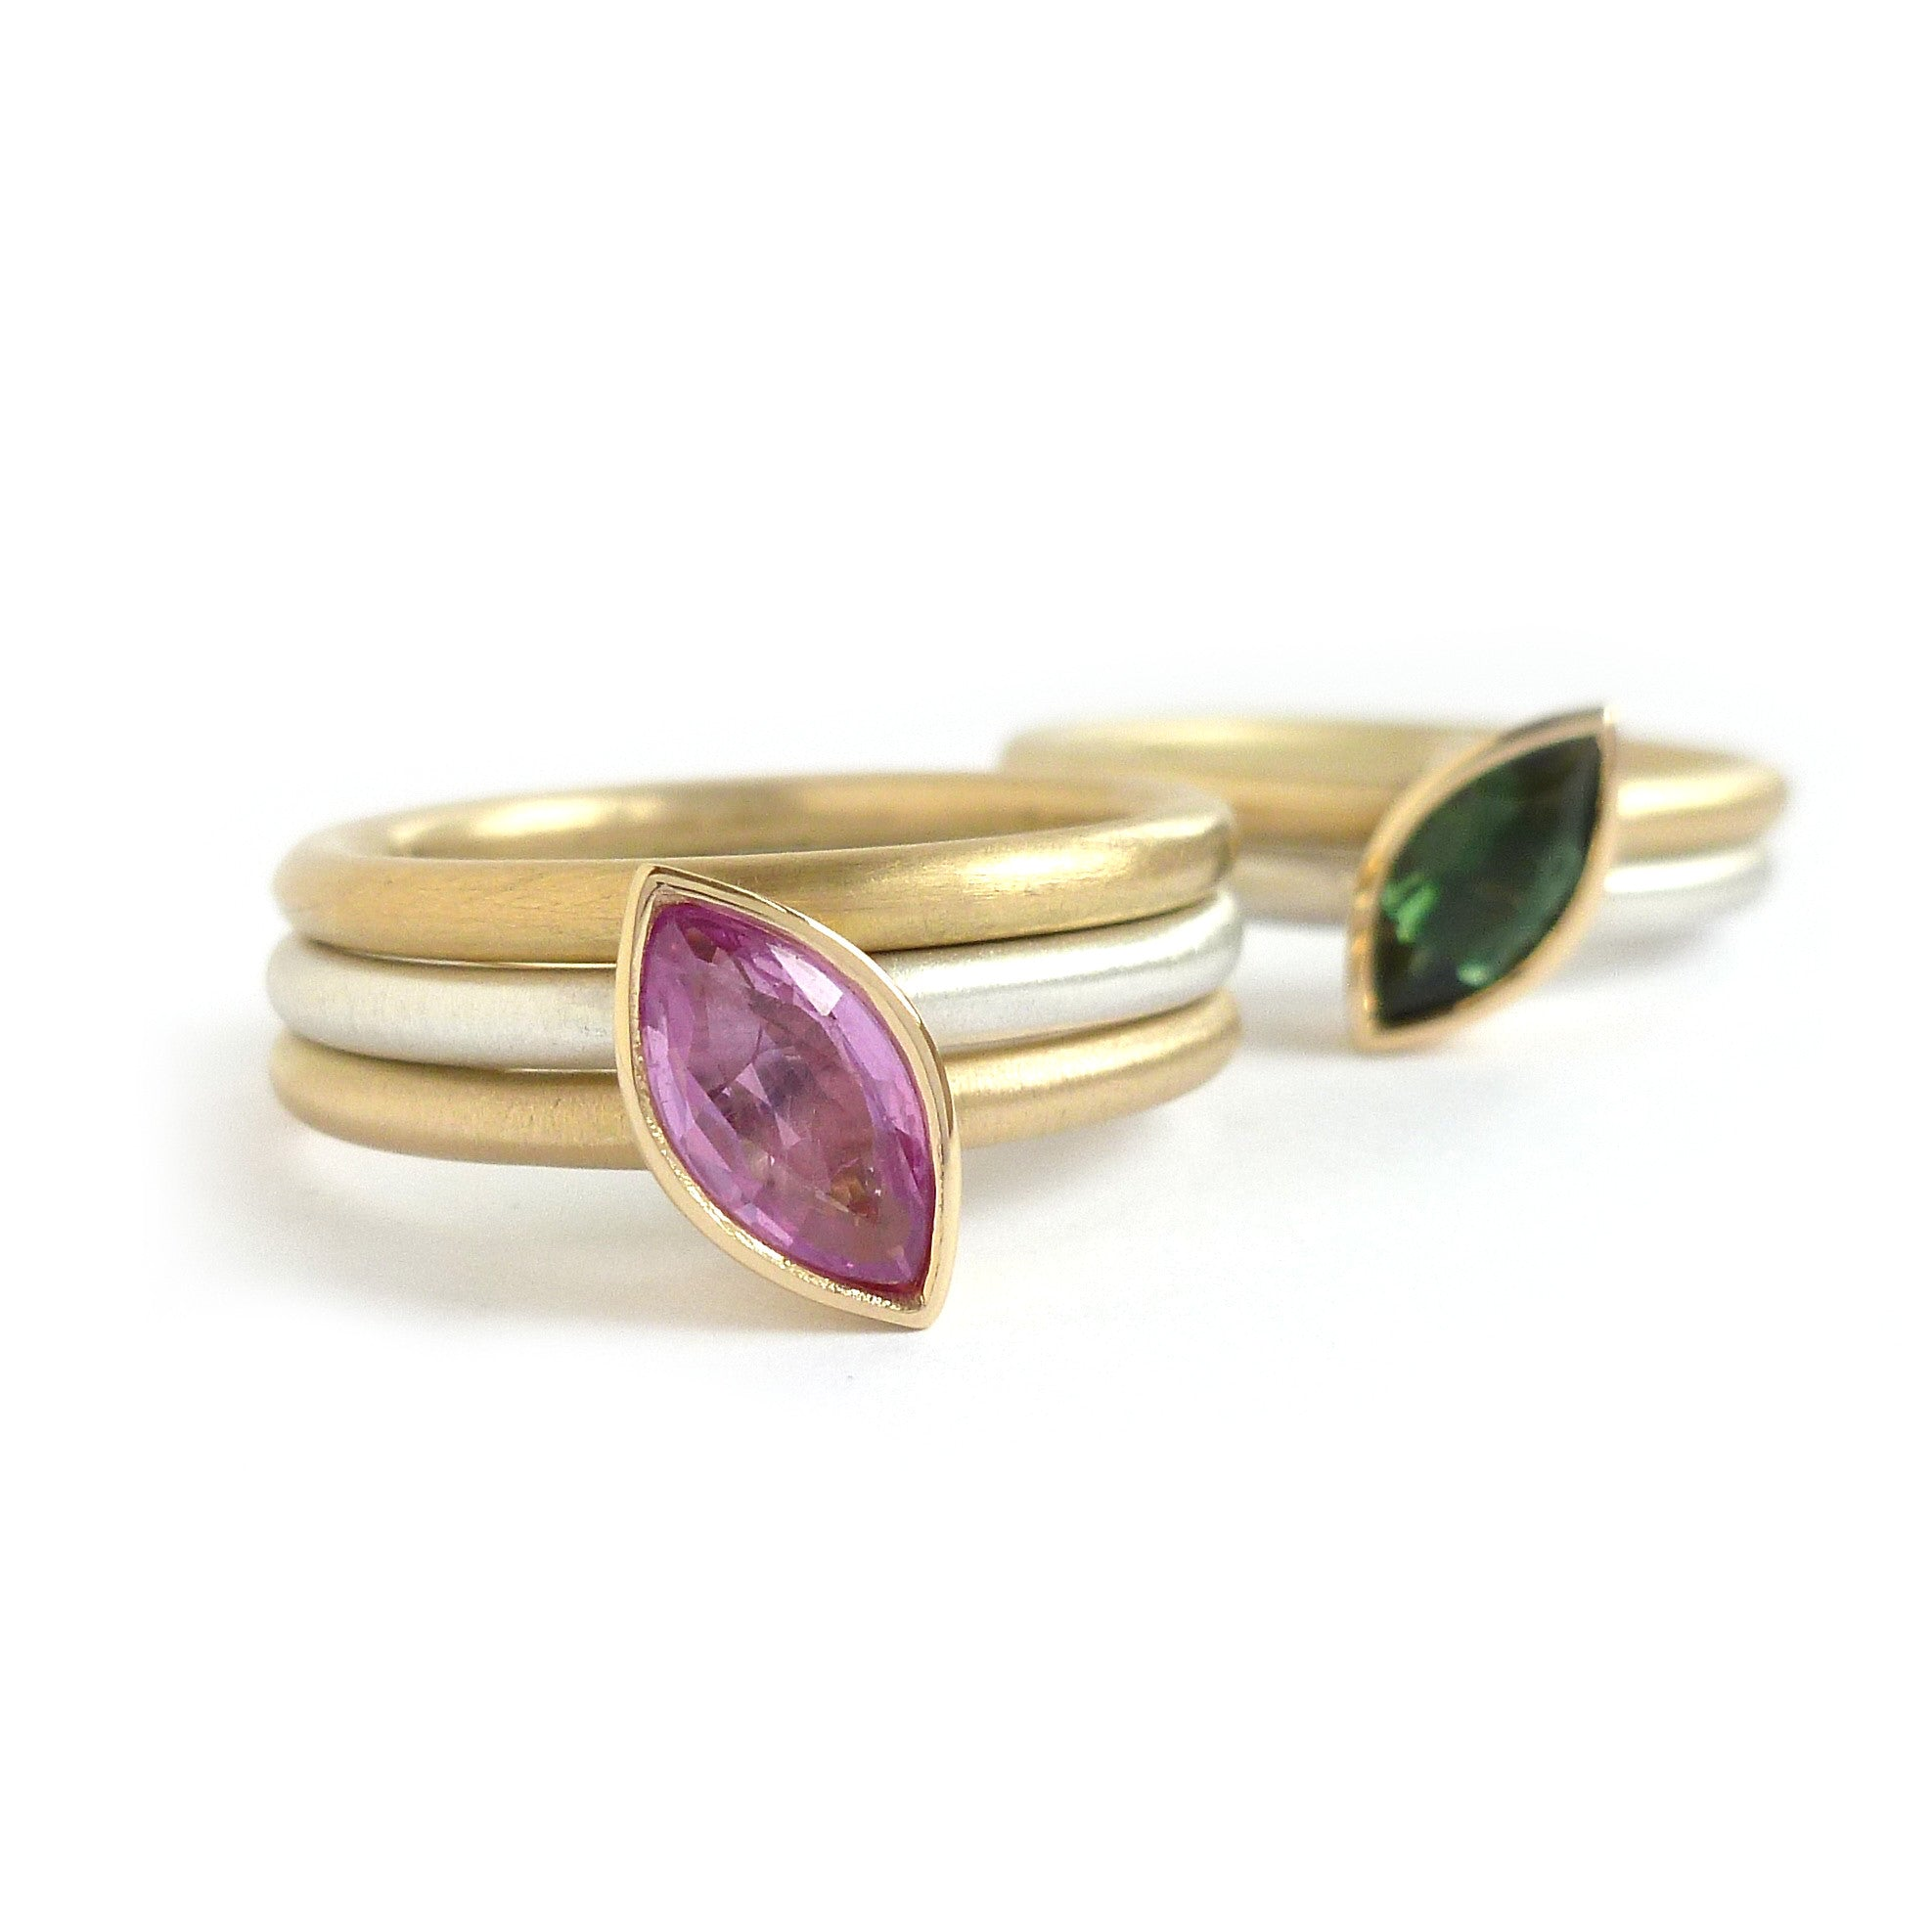 gregson uk la engagement los modern jewellery brooke designer rings ring stone double london wedding triangle by fine green tourmaline angeles